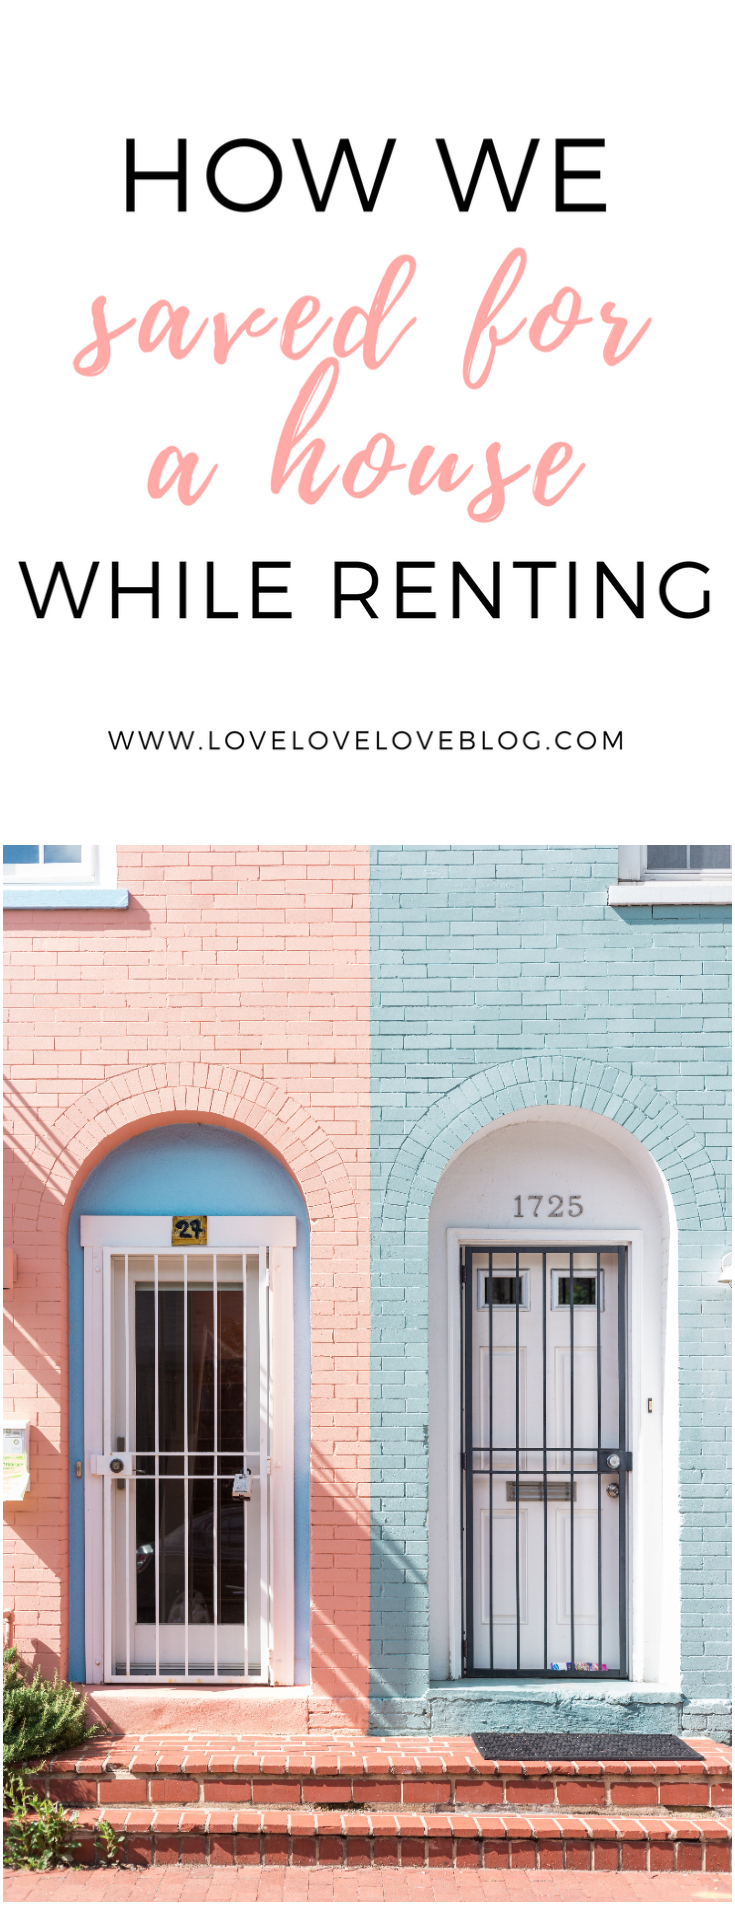 Save for a house while renting